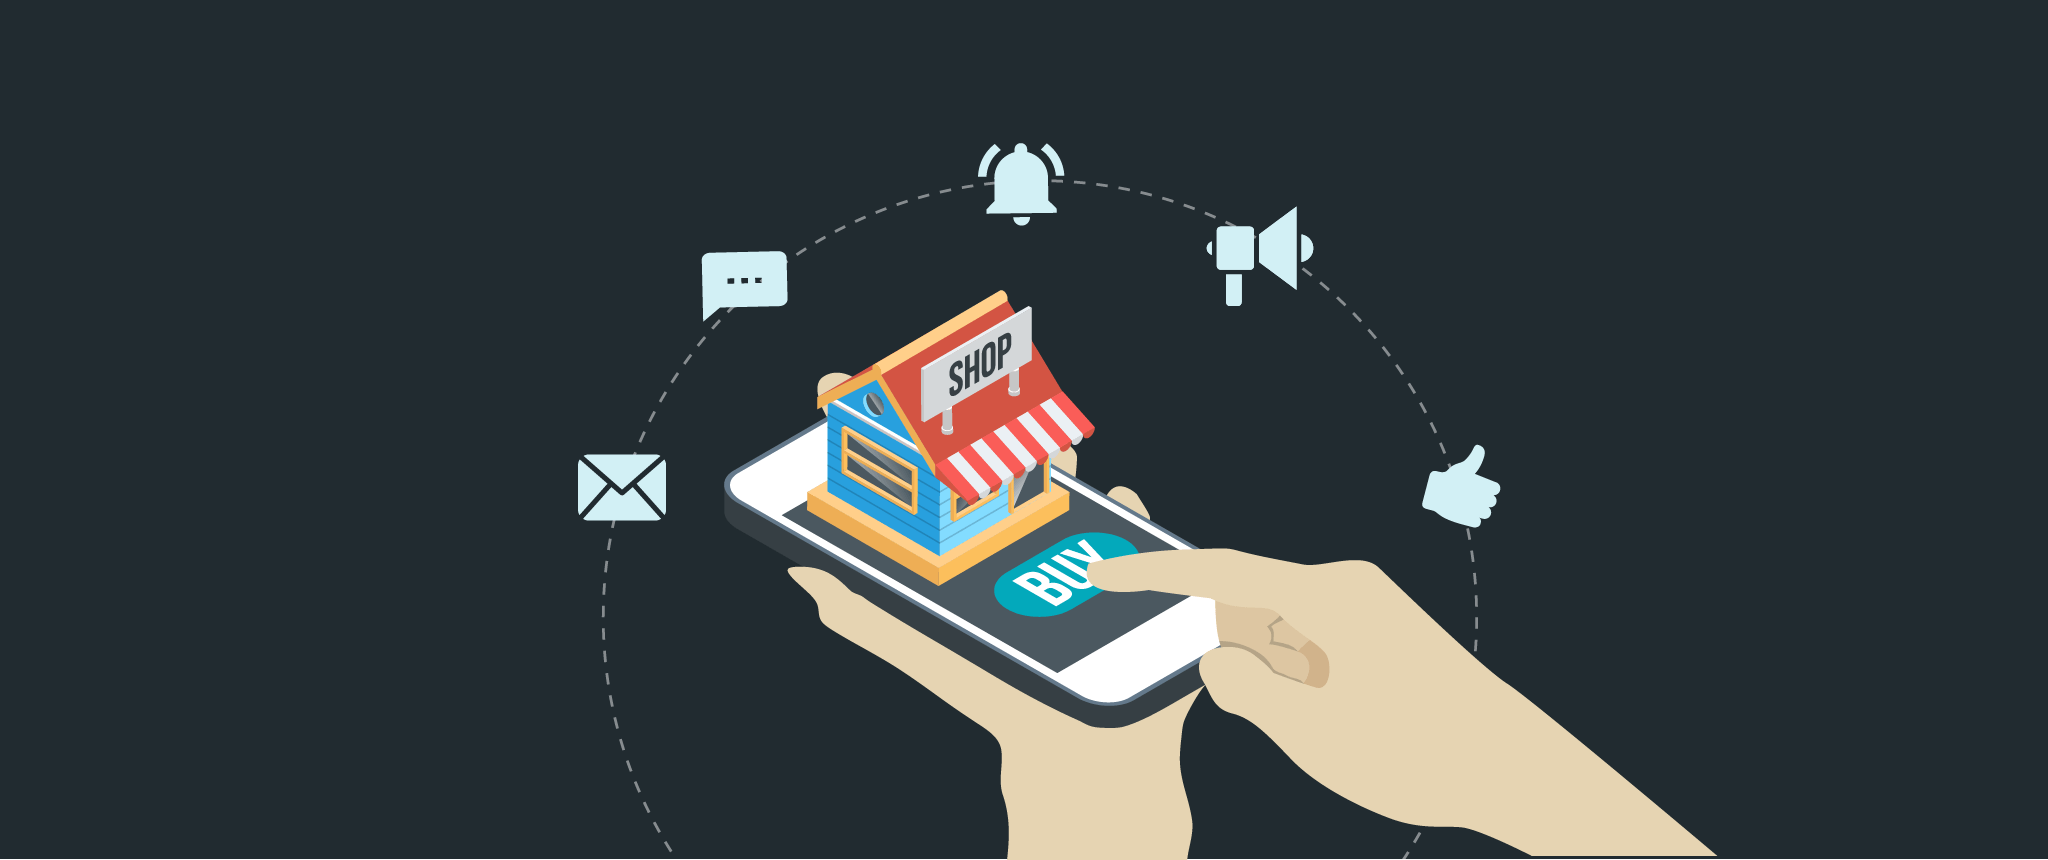 How to Leverage Mobile Shopping Habits for Better User Engagement